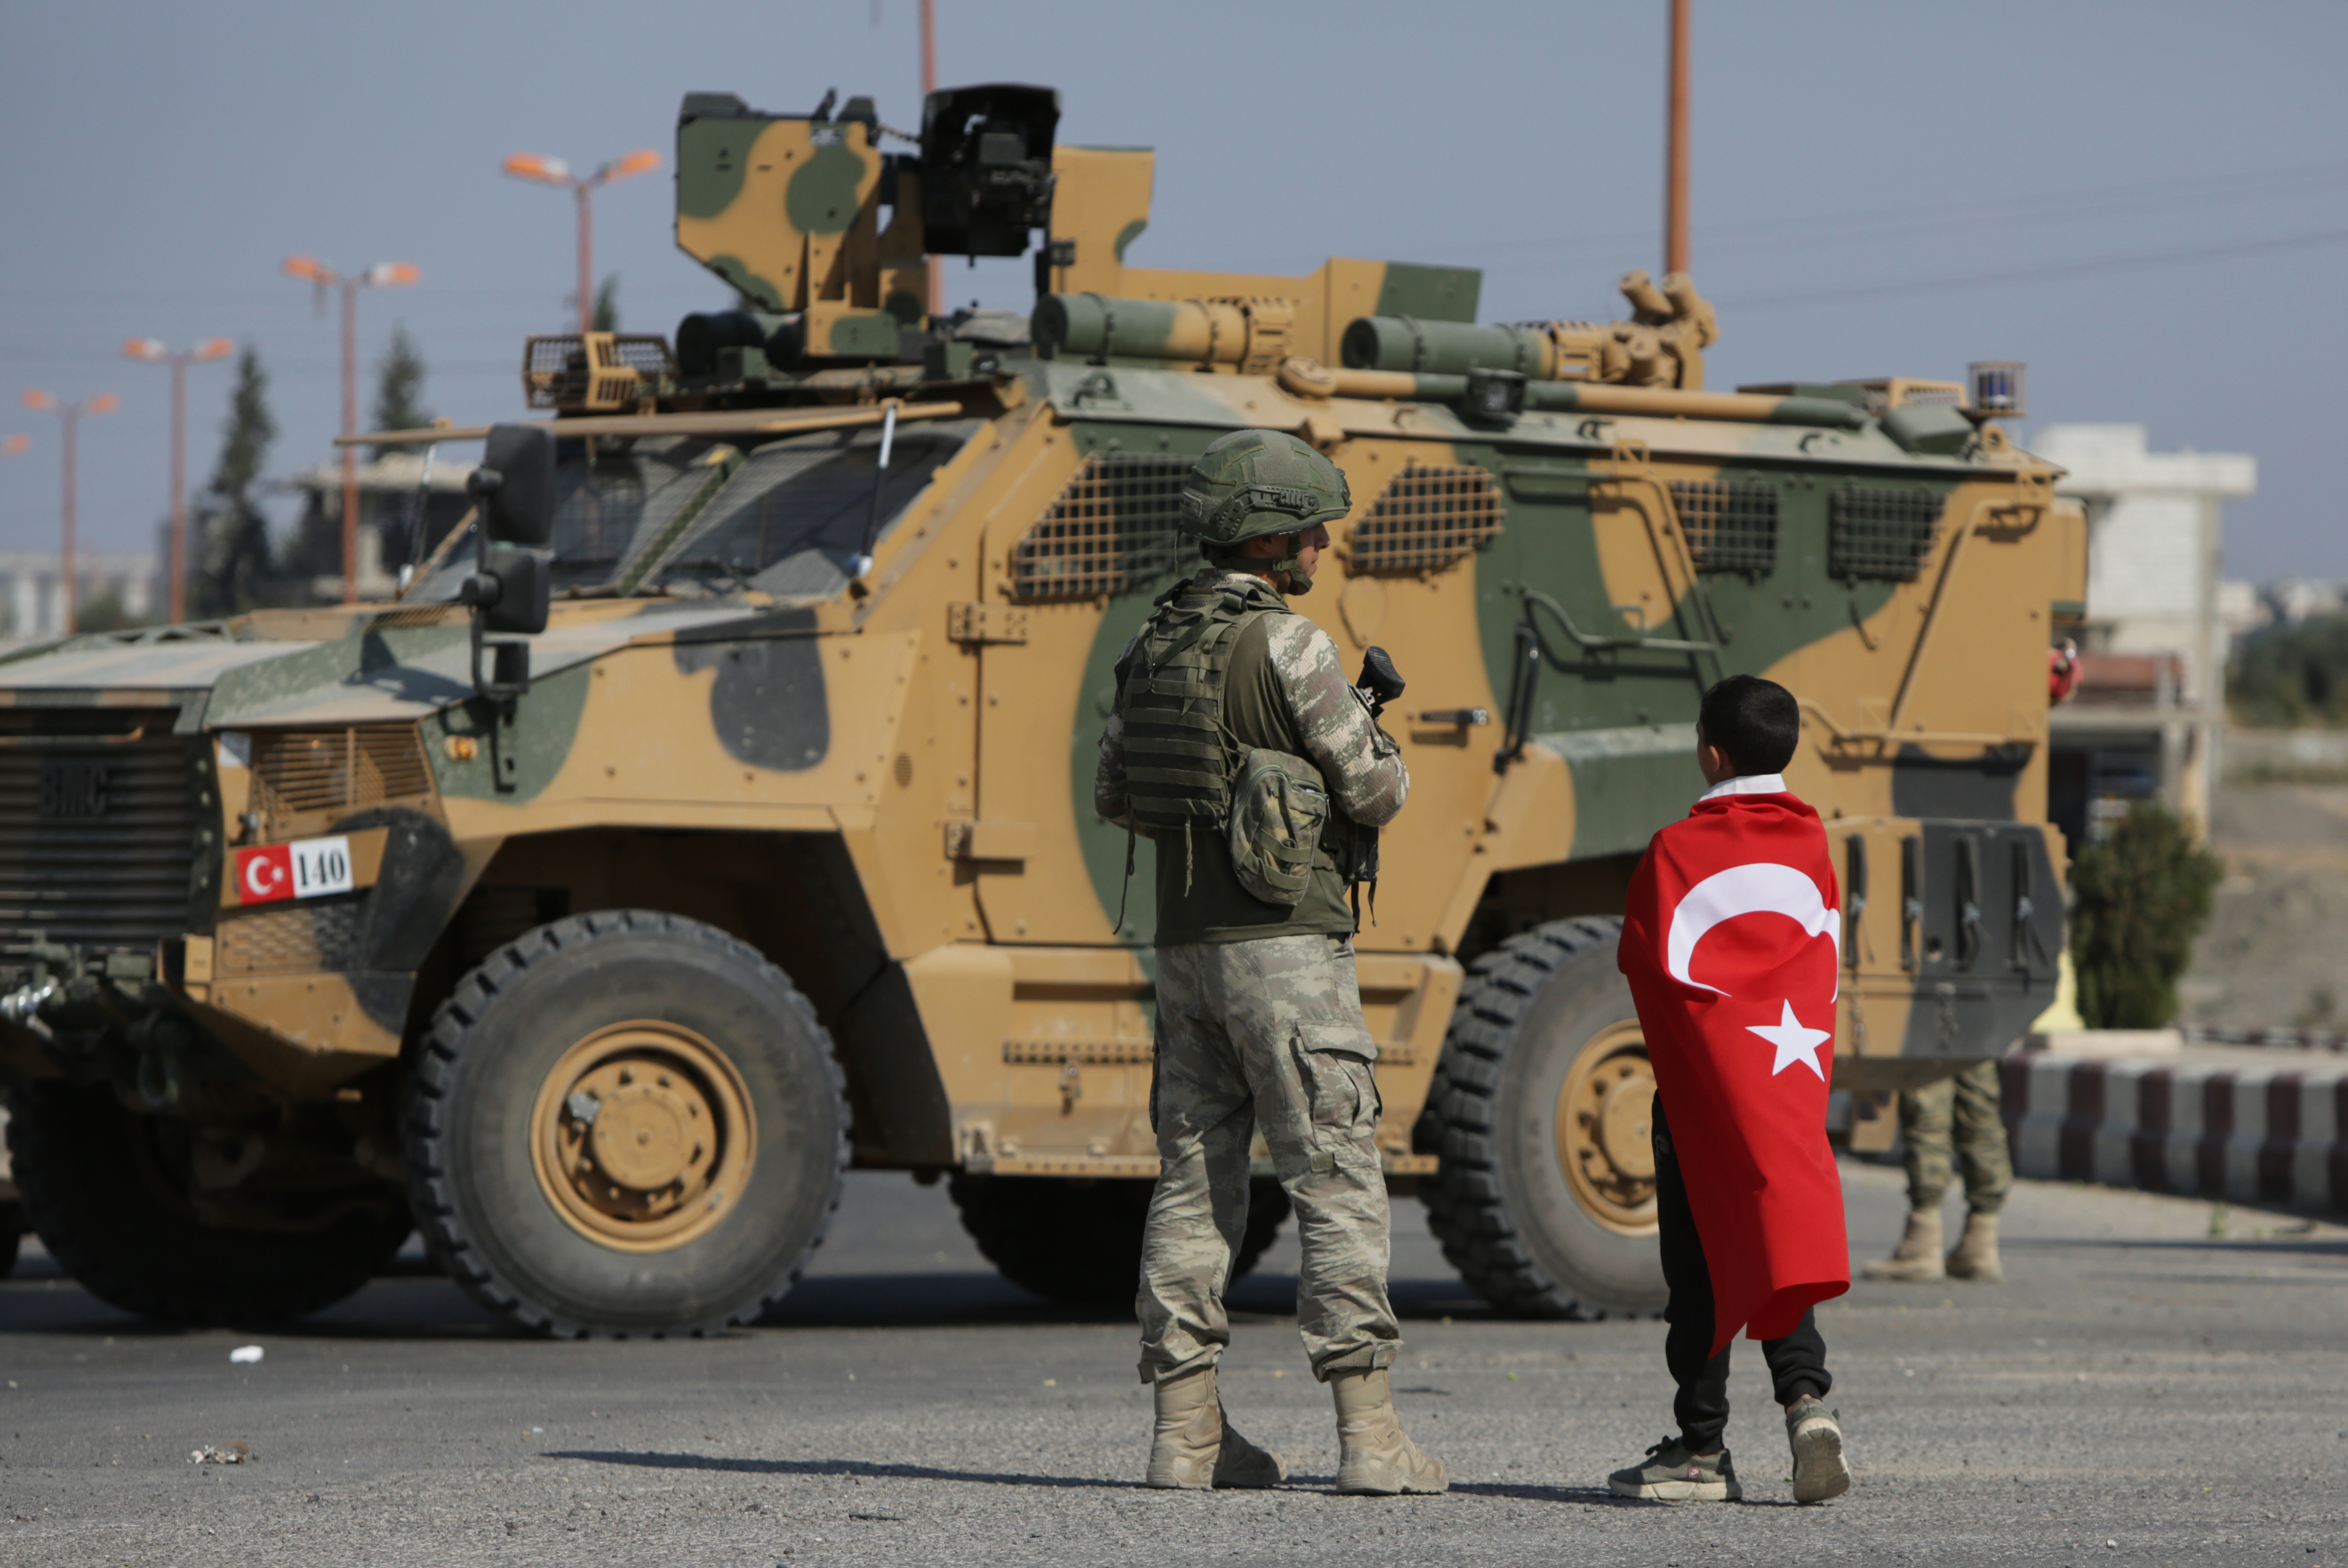 Turkish soldiers patrol the northern Syrian Kurdish town of Tal Abyad, on the border between Syria and Turkey, on October 23, 2019. - Moscow's forces in Syria headed for the border with Turkey today to ensure Kurdish fighters are pulling back after a Turkish-Russian deal wrested control of the Kurds' entire heartland. Kurdish forces, who controlled close to a third of Syria two weeks ago, have now lost almost everything, after the agreement signed in Sochi granted Turkey the right to remain fully deployed in an Arab-majority area that was the main target of an offensive launched on October 9. (Photo by BAKR ALKASEM/AFP via Getty Images)